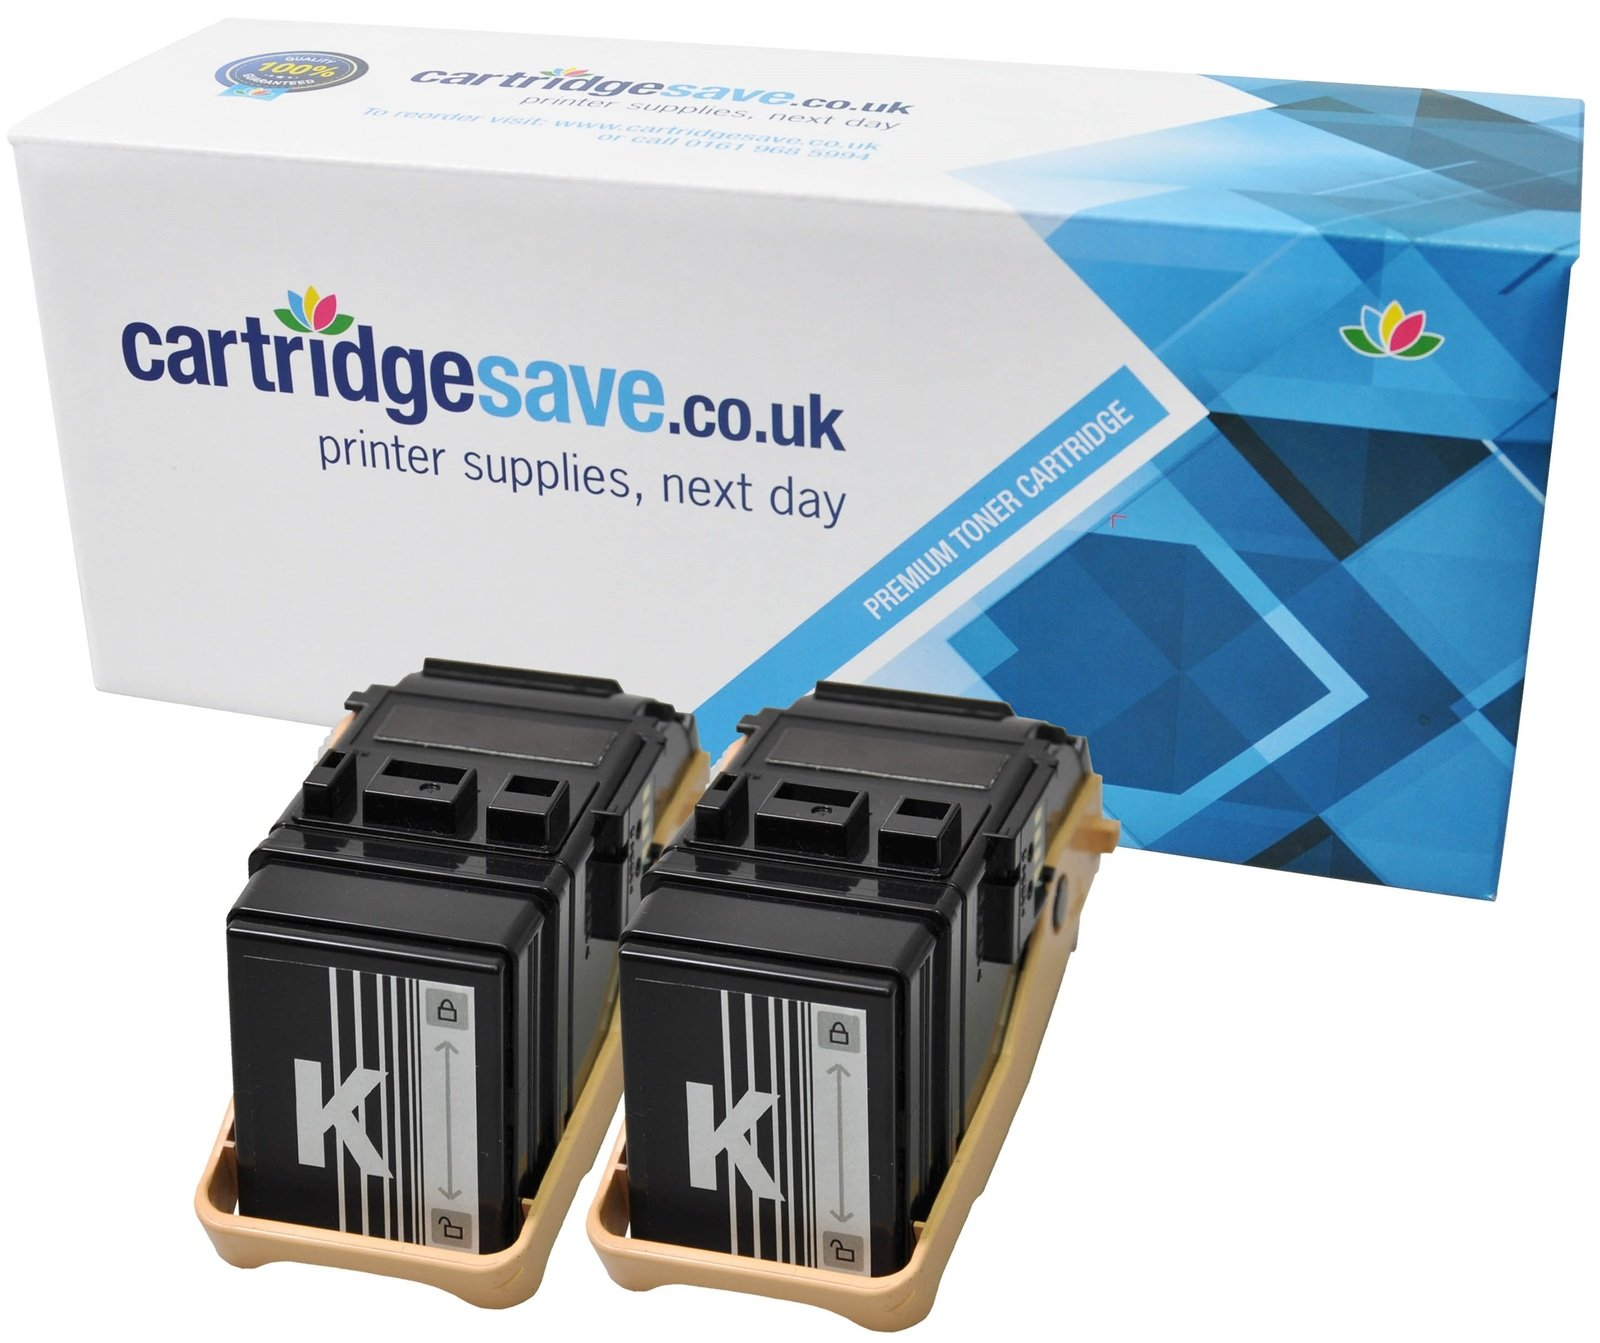 Compatible Black Xerox 106R02605 Toner Twin Pack (Replaces Xerox 106R02605 Laser Printer Cartridges)